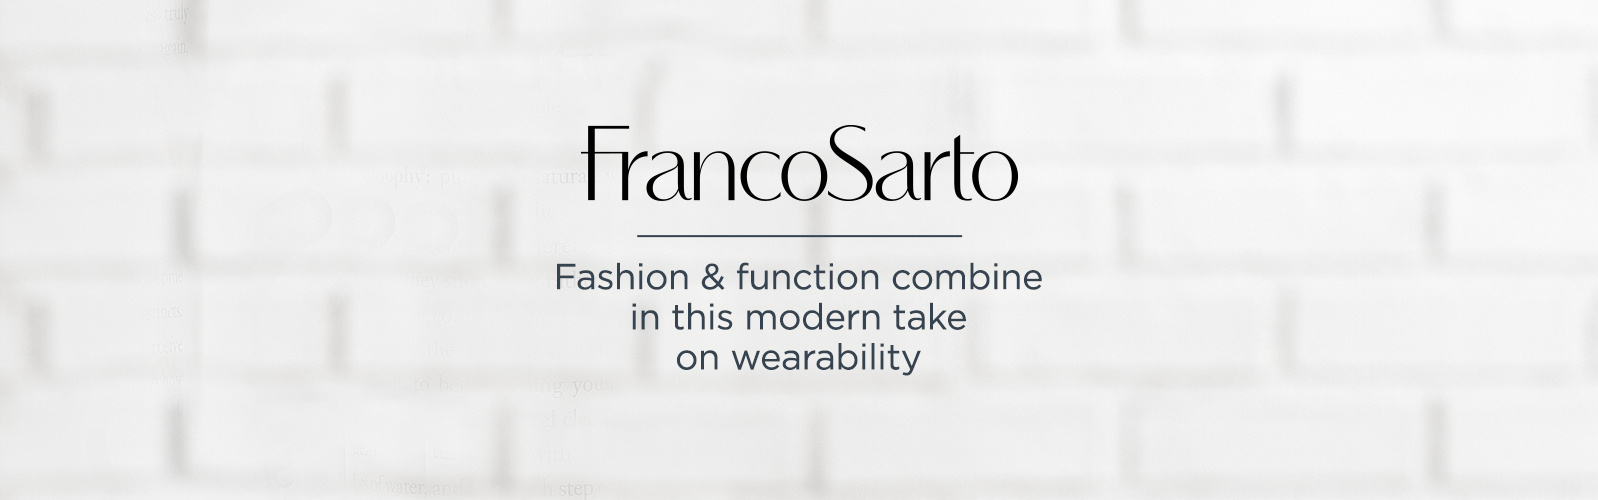 Franco Sarto Fashion & function combine in this  modern take on wearability